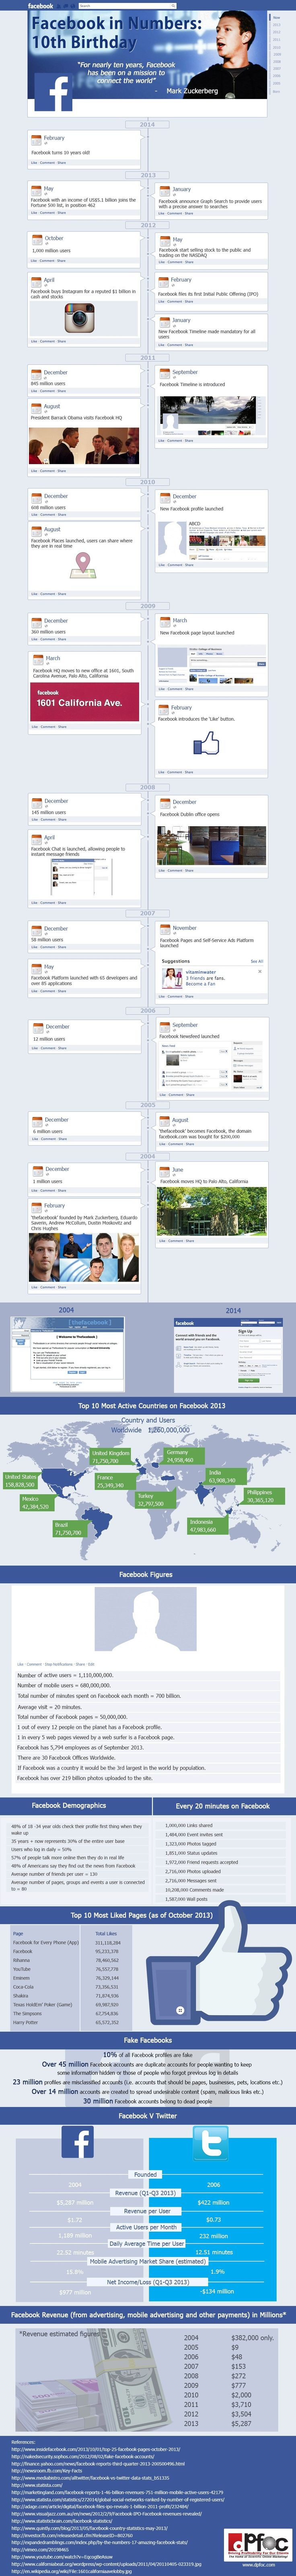 Facebook In Numbers - 100 #Facebook Stats And Facts - #infographic #socialmedia